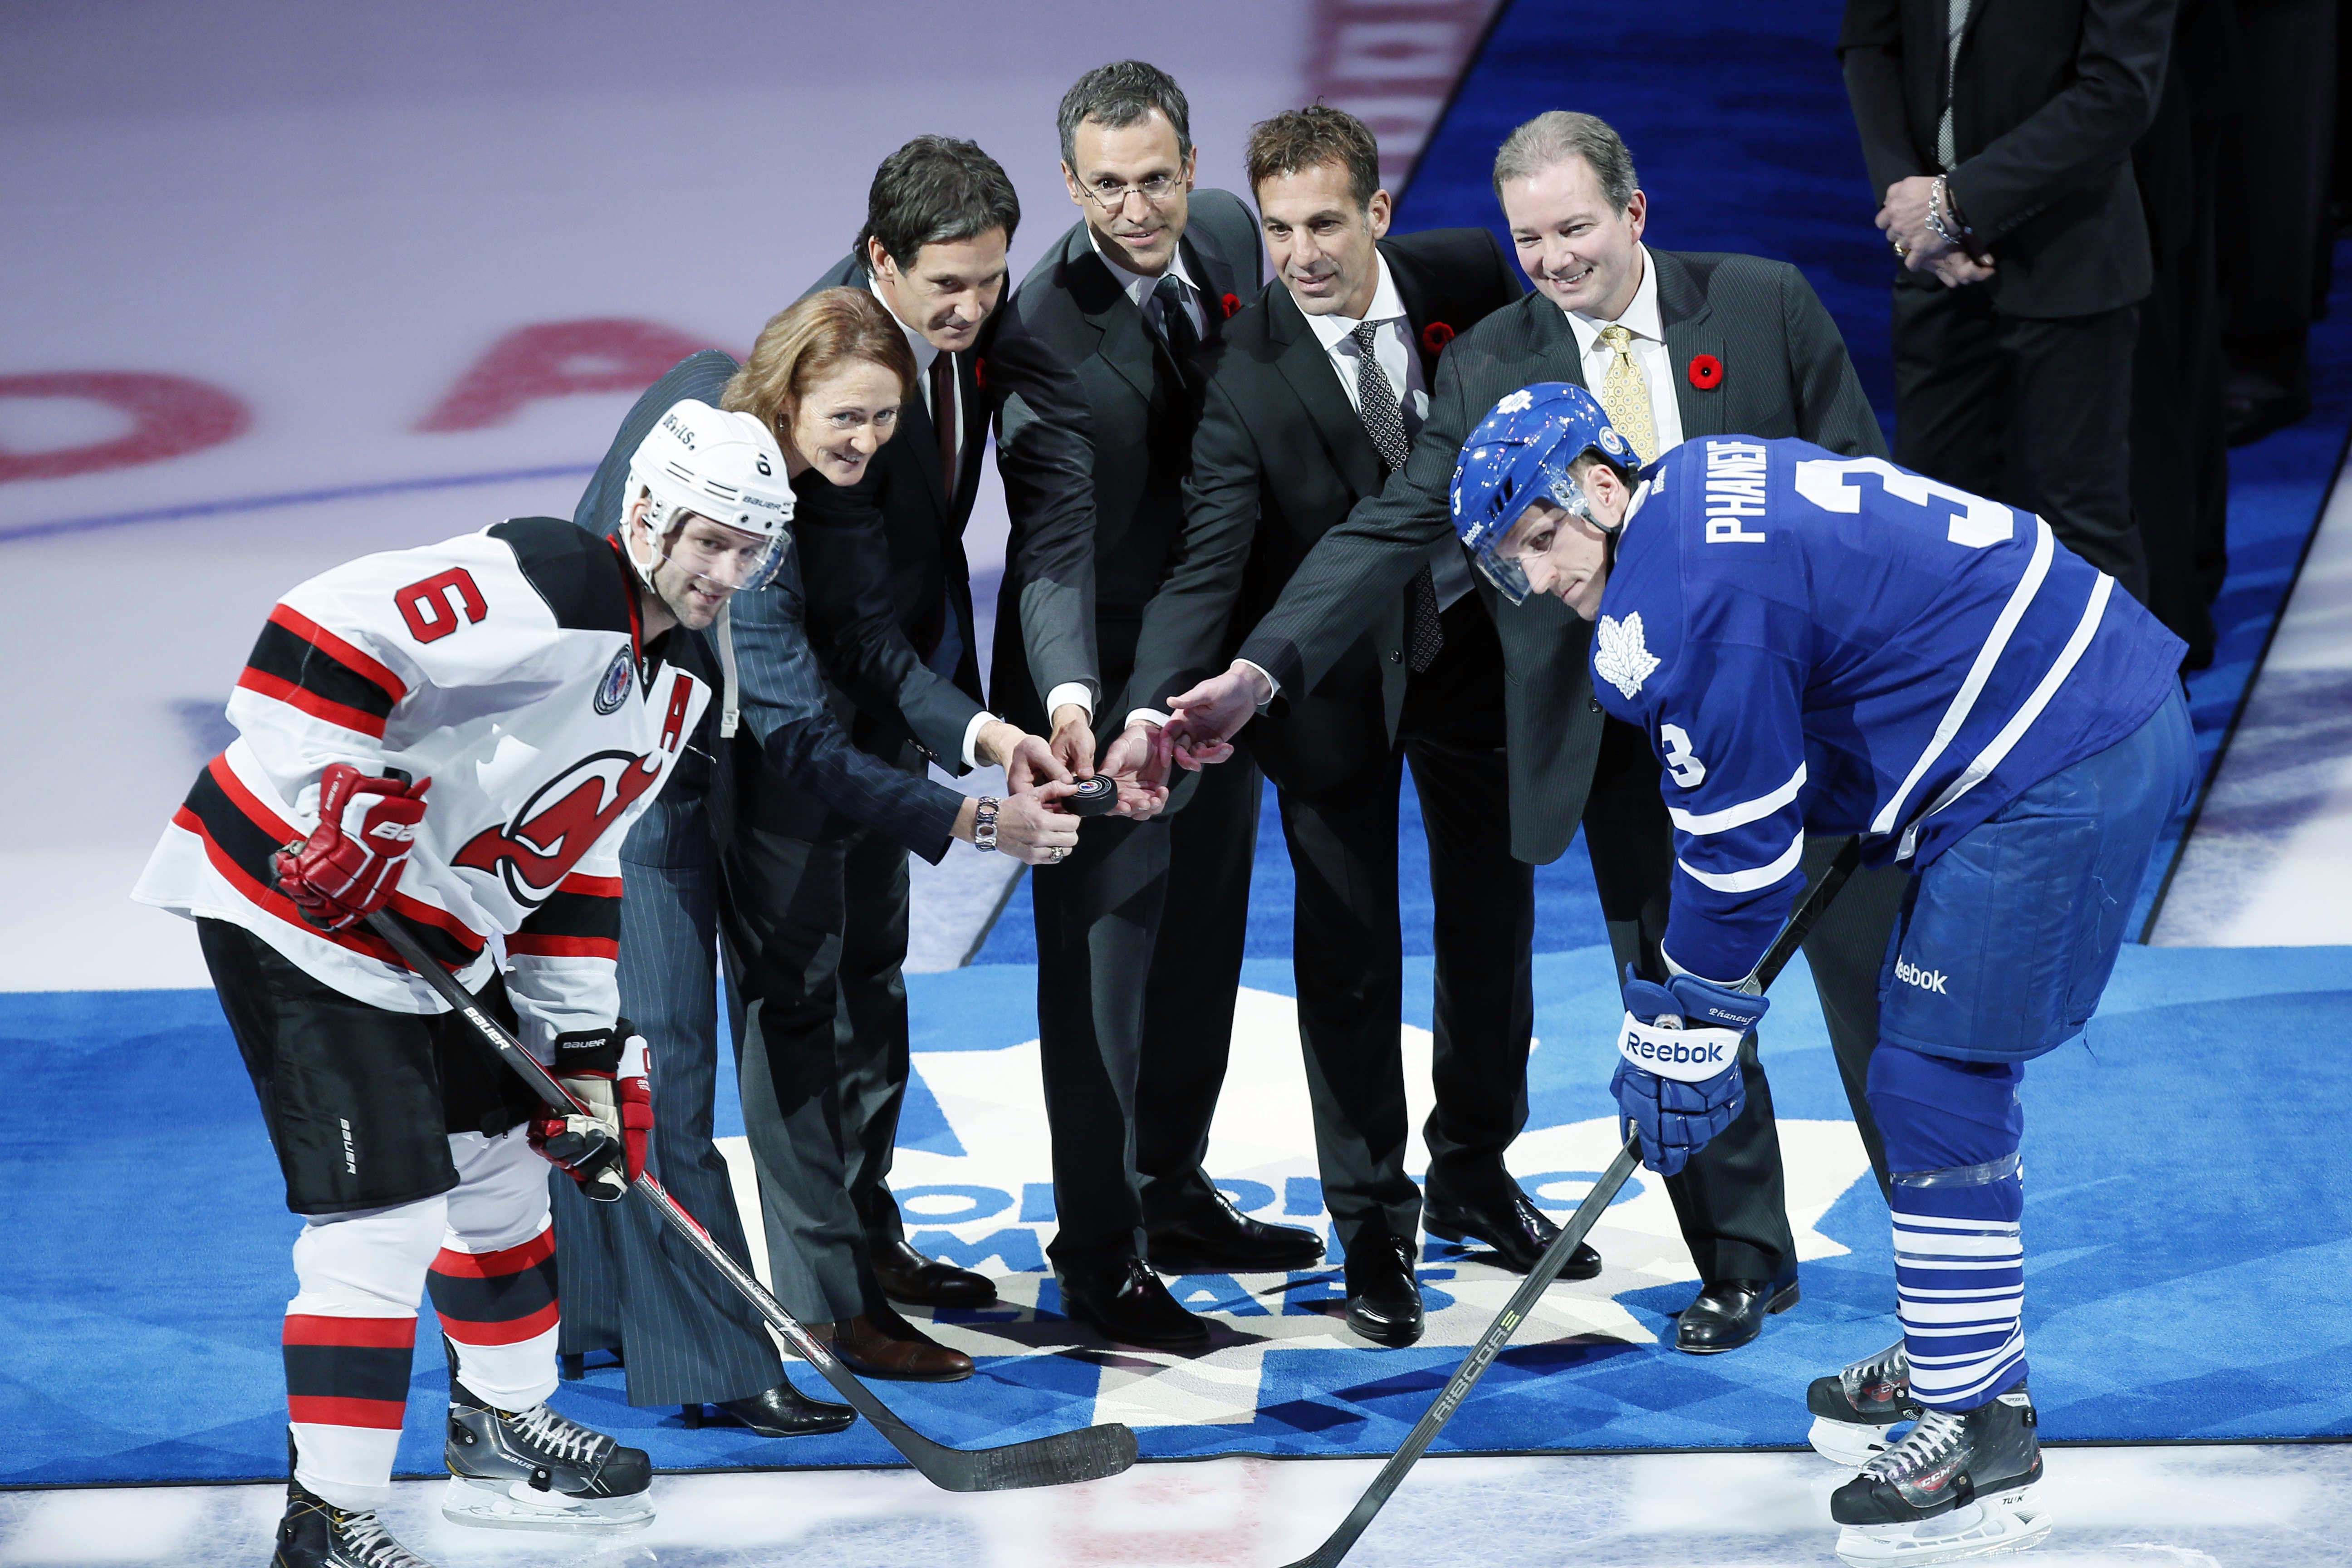 7540061-nhl-new-jersey-devils-at-toronto-maple-leafs